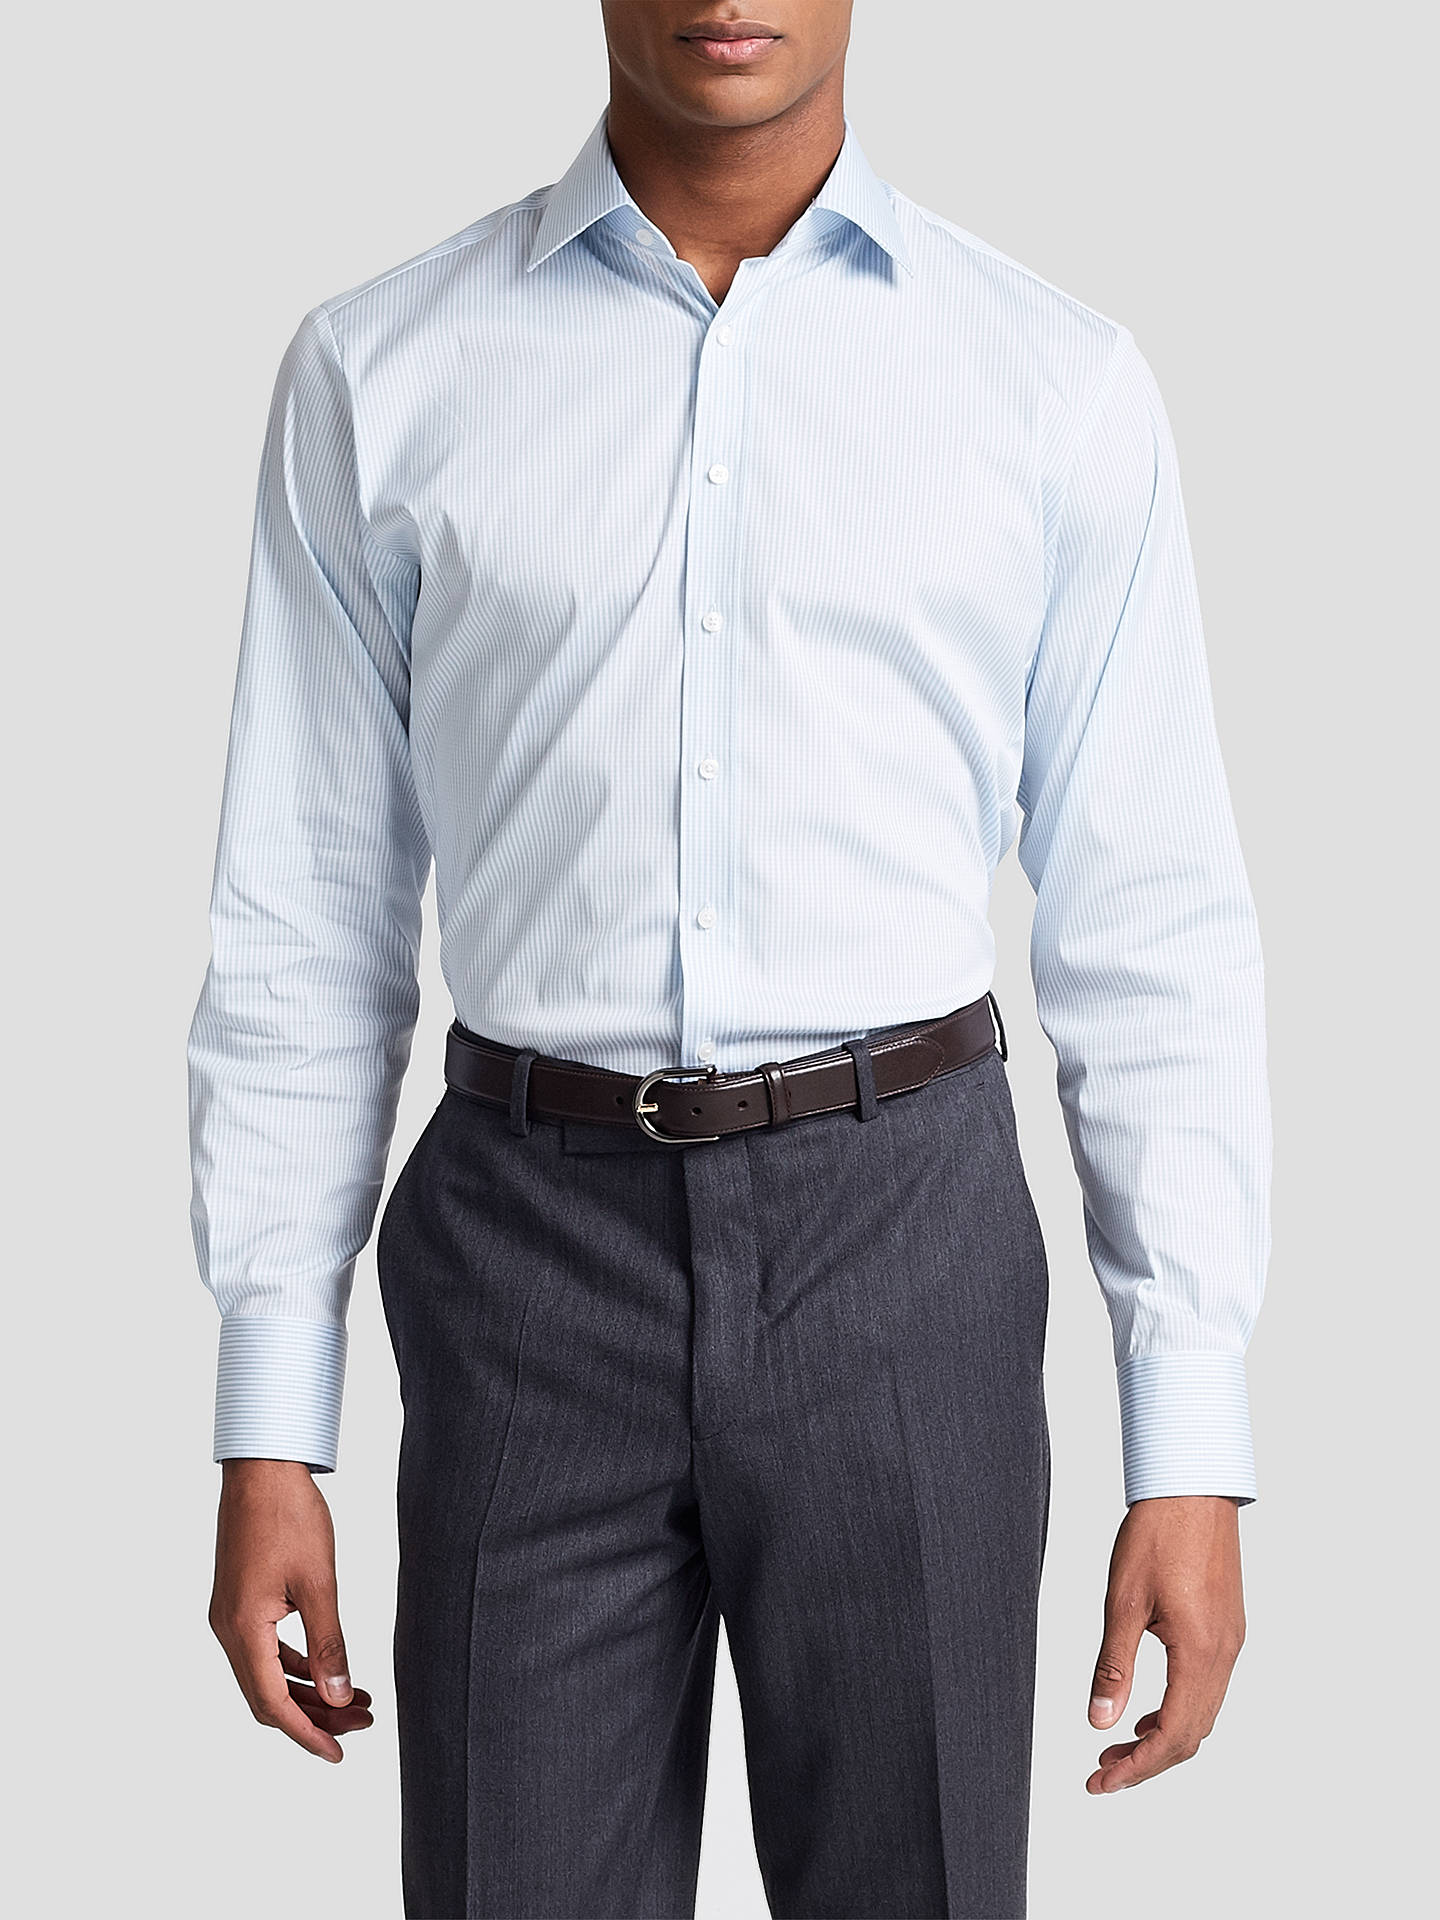 Athletic Fit White Dress Shirts Cotswold Hire